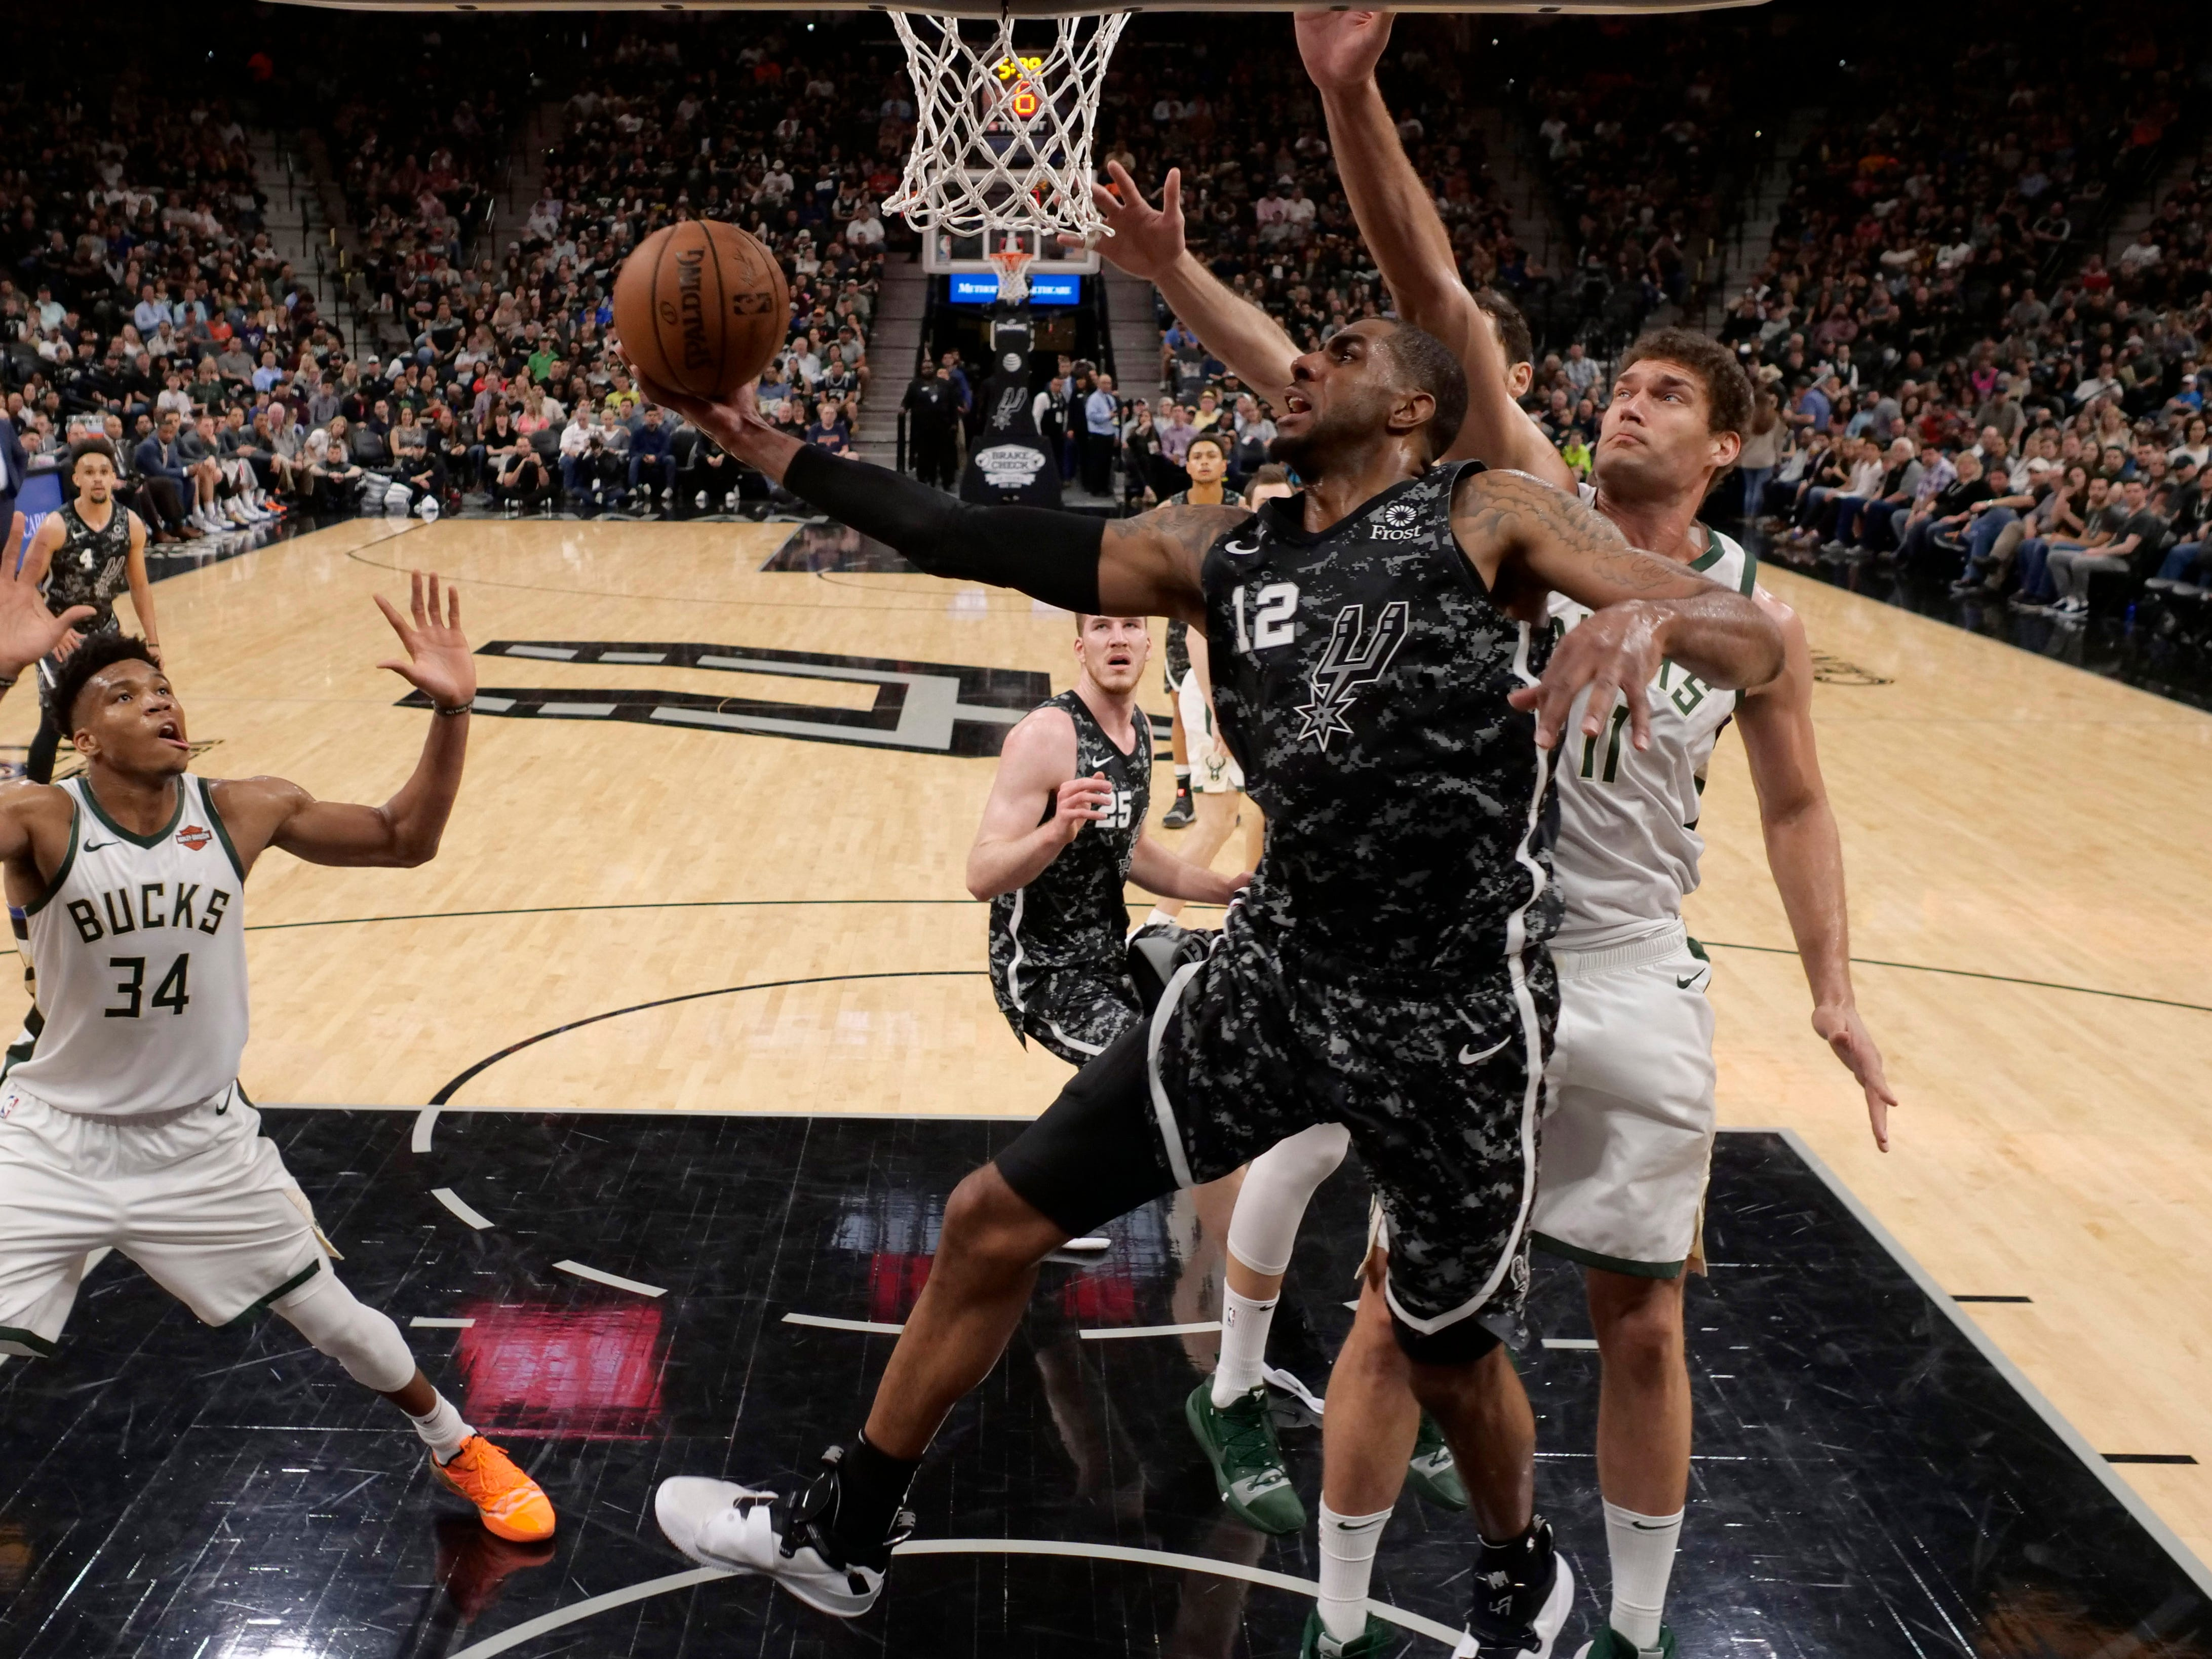 Spurs power forward LaMarcus Aldridge goes up for two of his game-high 29 points against the Bucks on Sunday night.